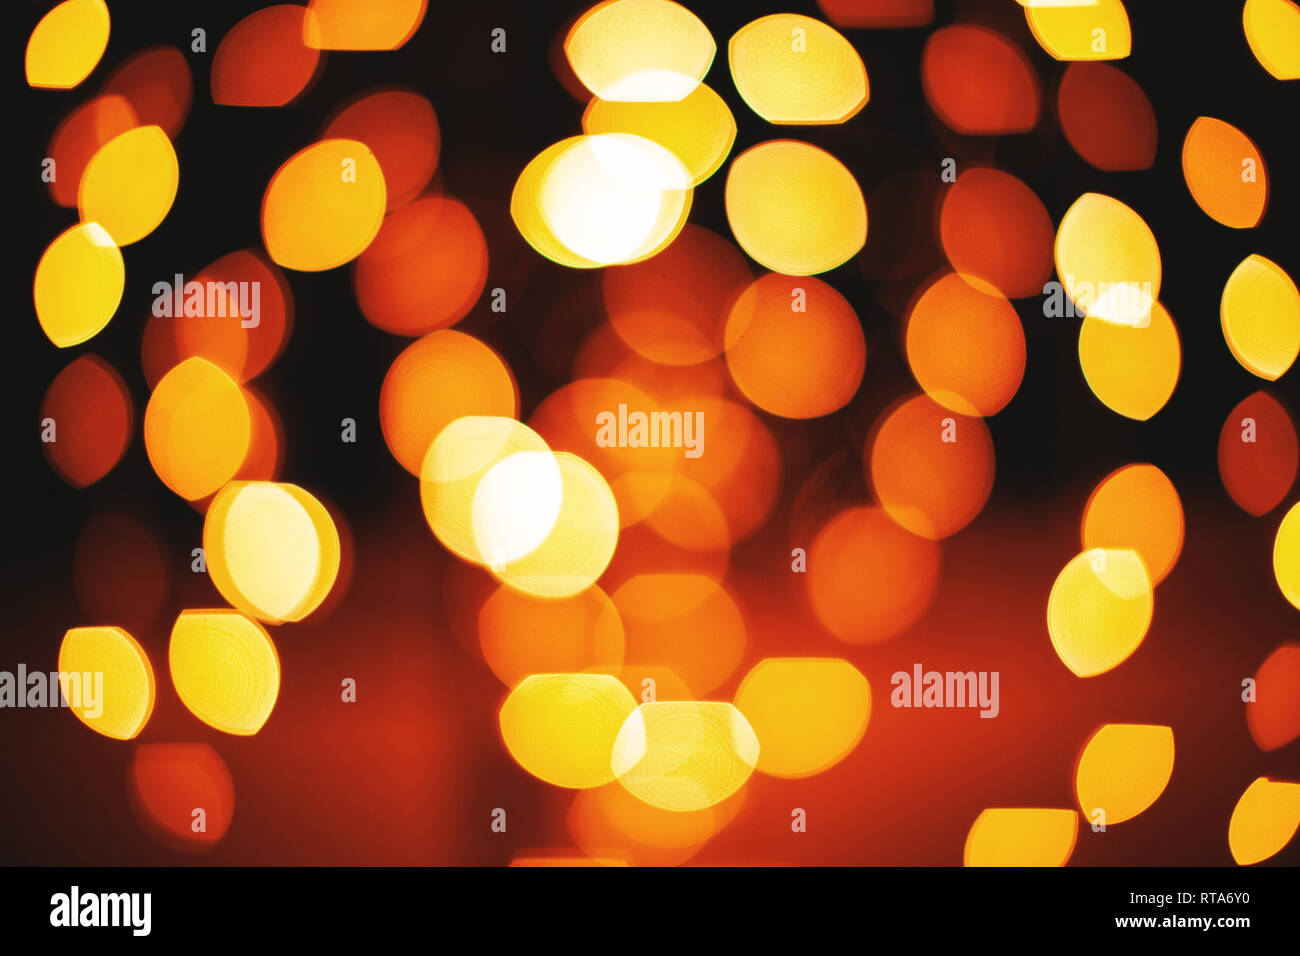 A group of circle and oval shape from red and yellow lights defocused abstract background, Lens aperture bokeh blurred effect Stock Photo